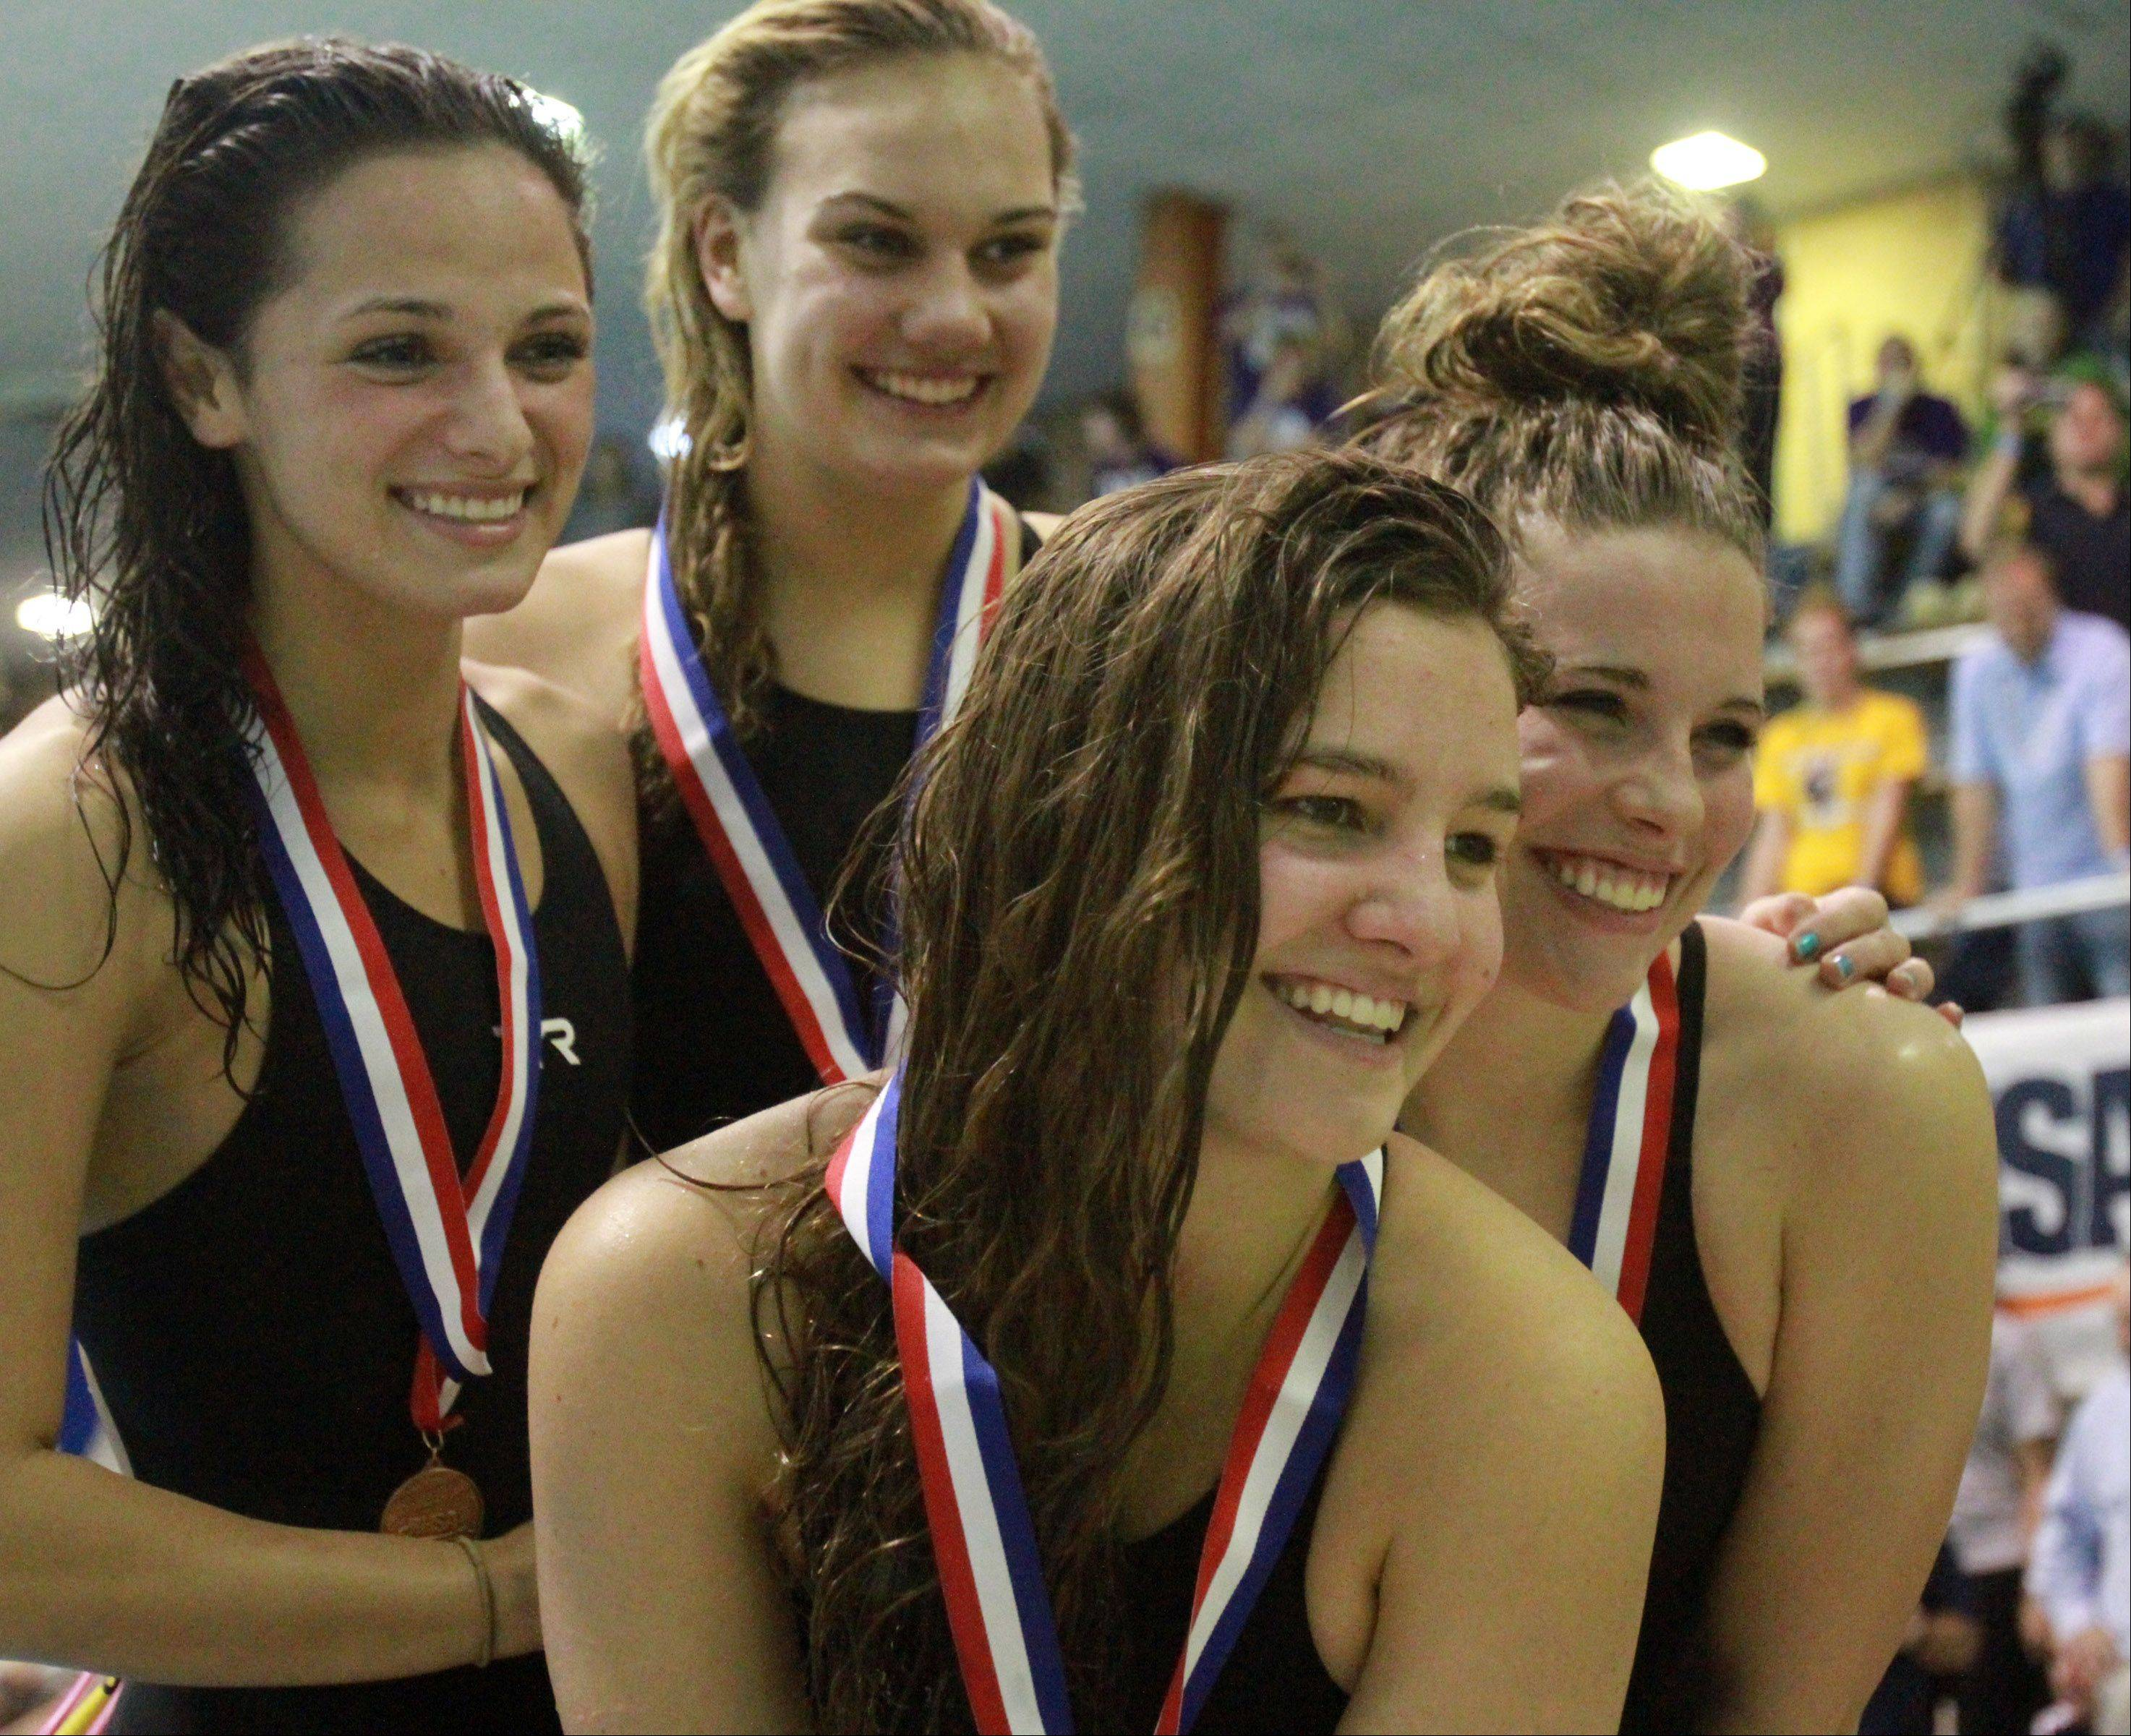 Neuqua Valley's Riley Schroedter, Megan Childs, Grace Soltys, and Gia Sims placed fifth in the 400-yard freestyle relay at the IHSA state championships in Evanston on Saturday.